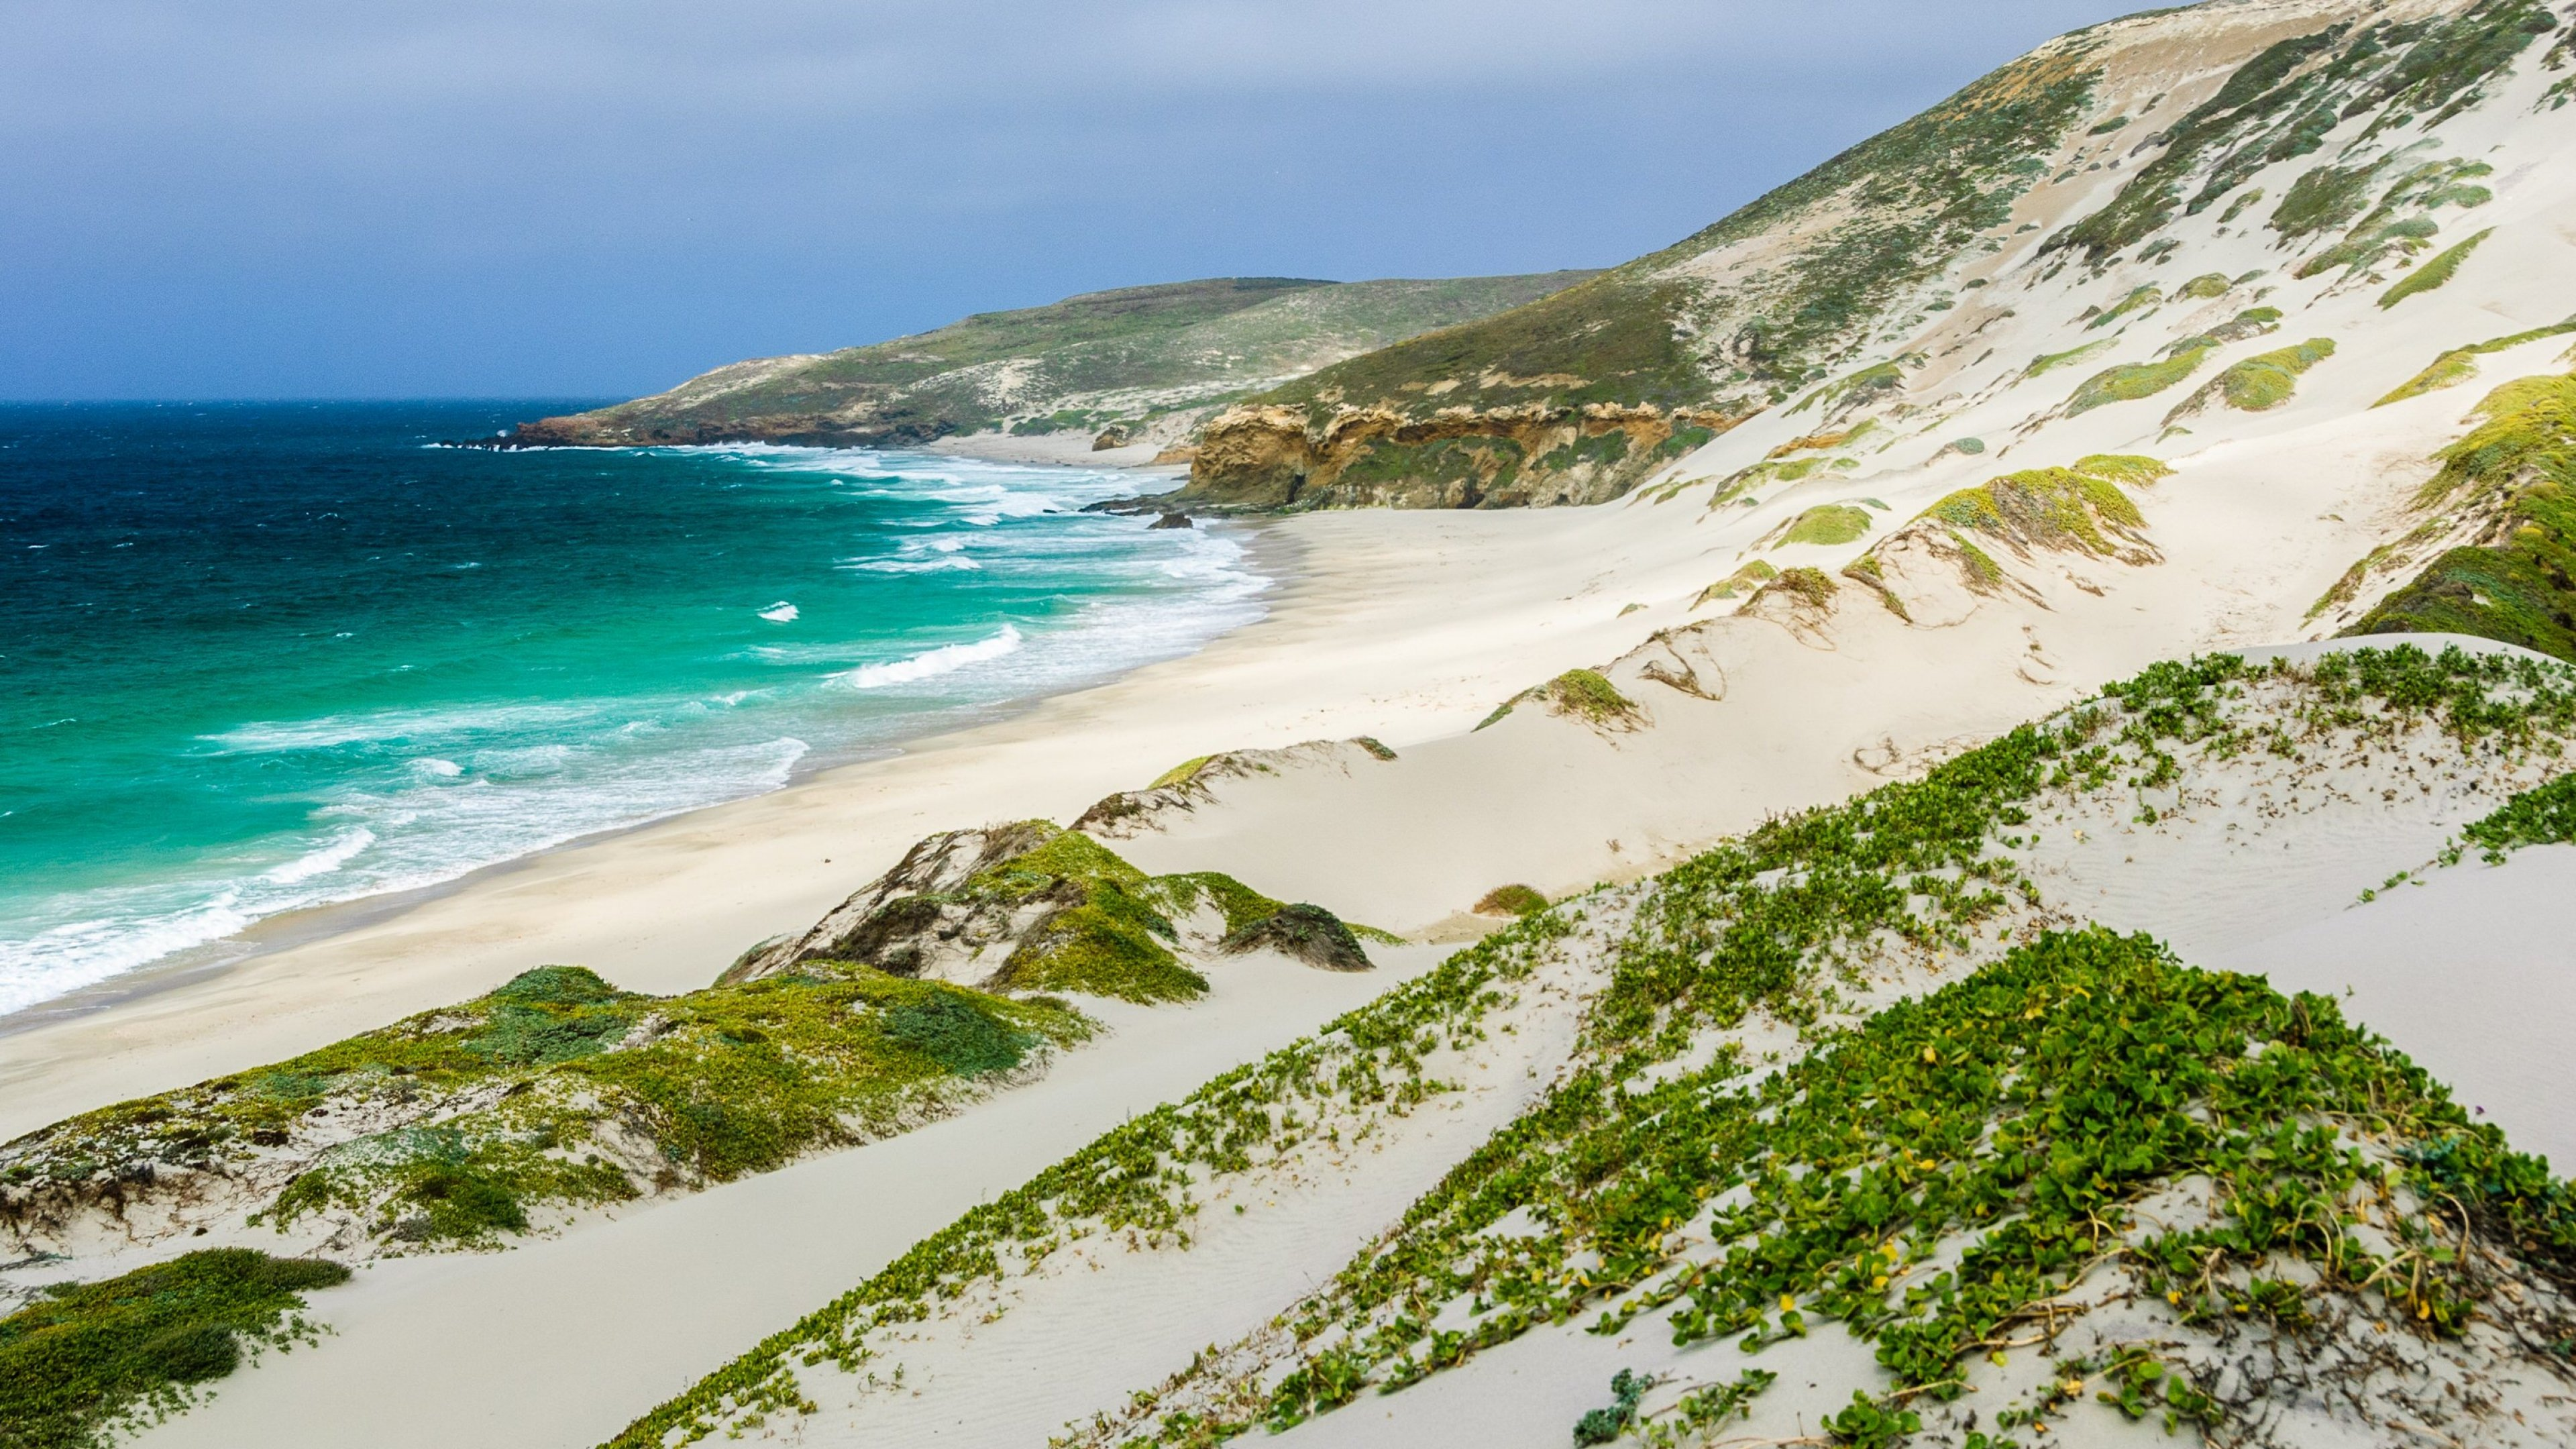 Sand dunes sprinkled with vibrant greenery line the shores of San Miguel Island at Channel Islands National Park as bright blue water rushes inland.